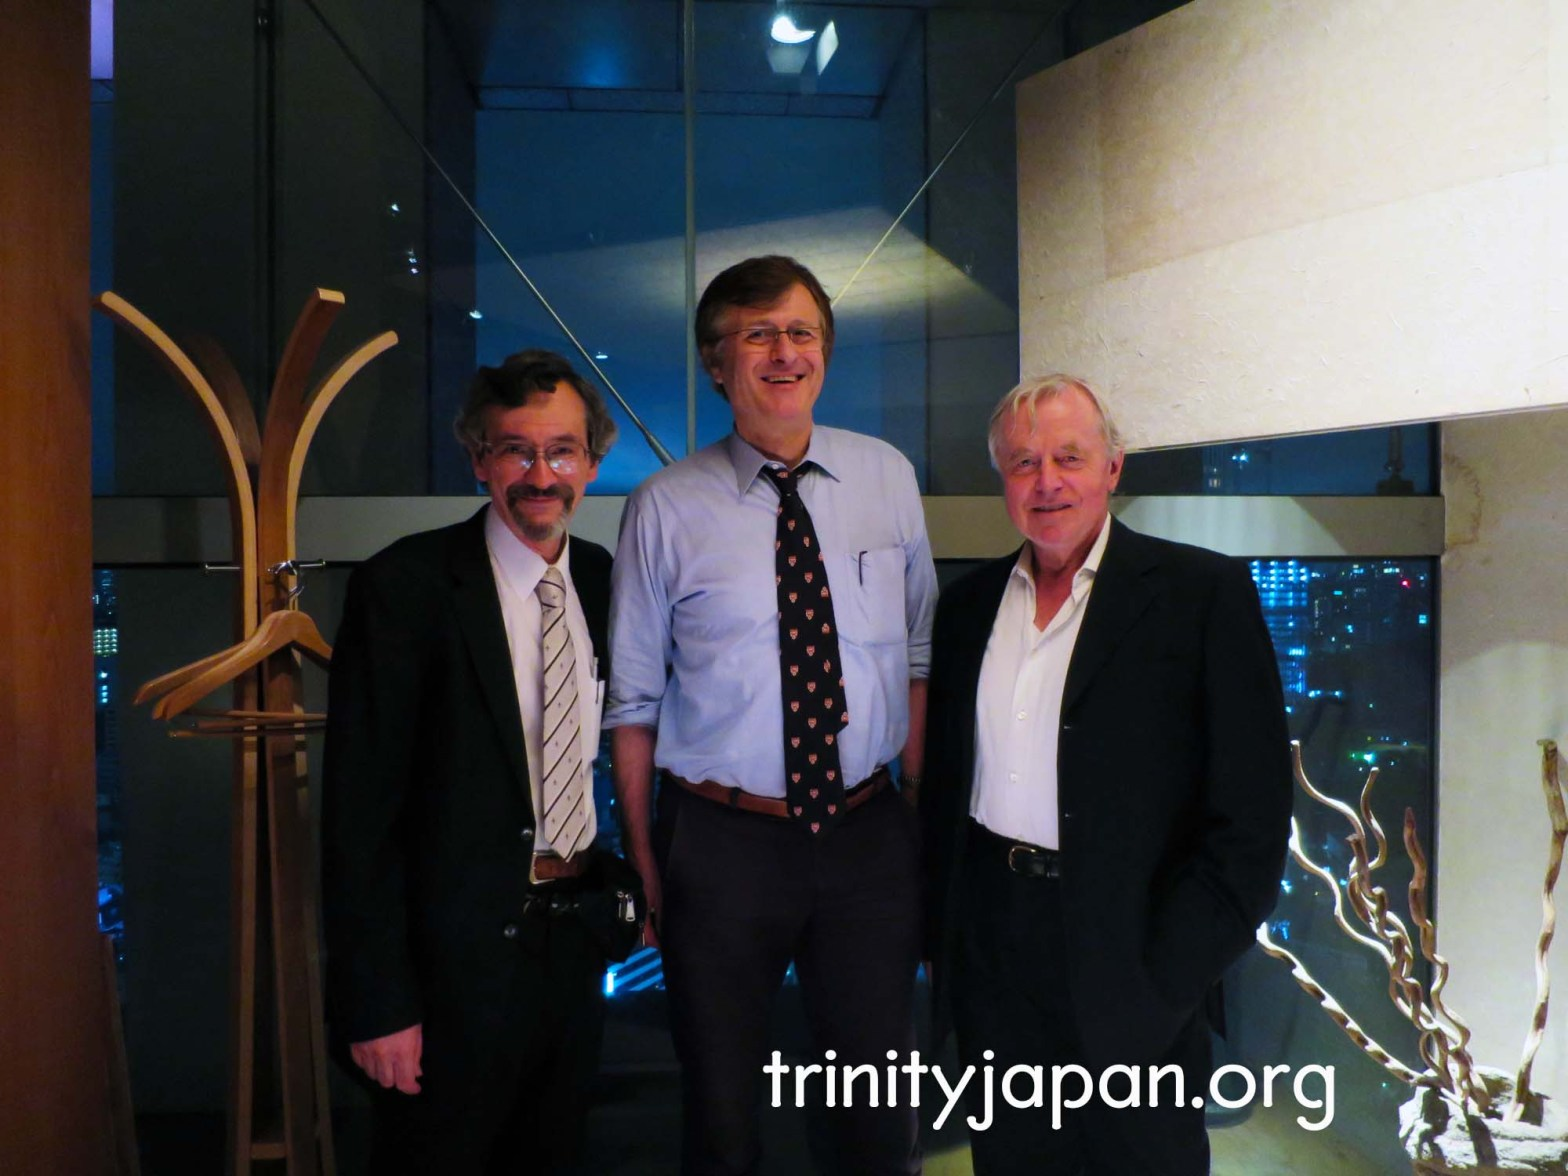 2nd Trinity in Japan Society Meeting on 19 June 2015 in Tokyo